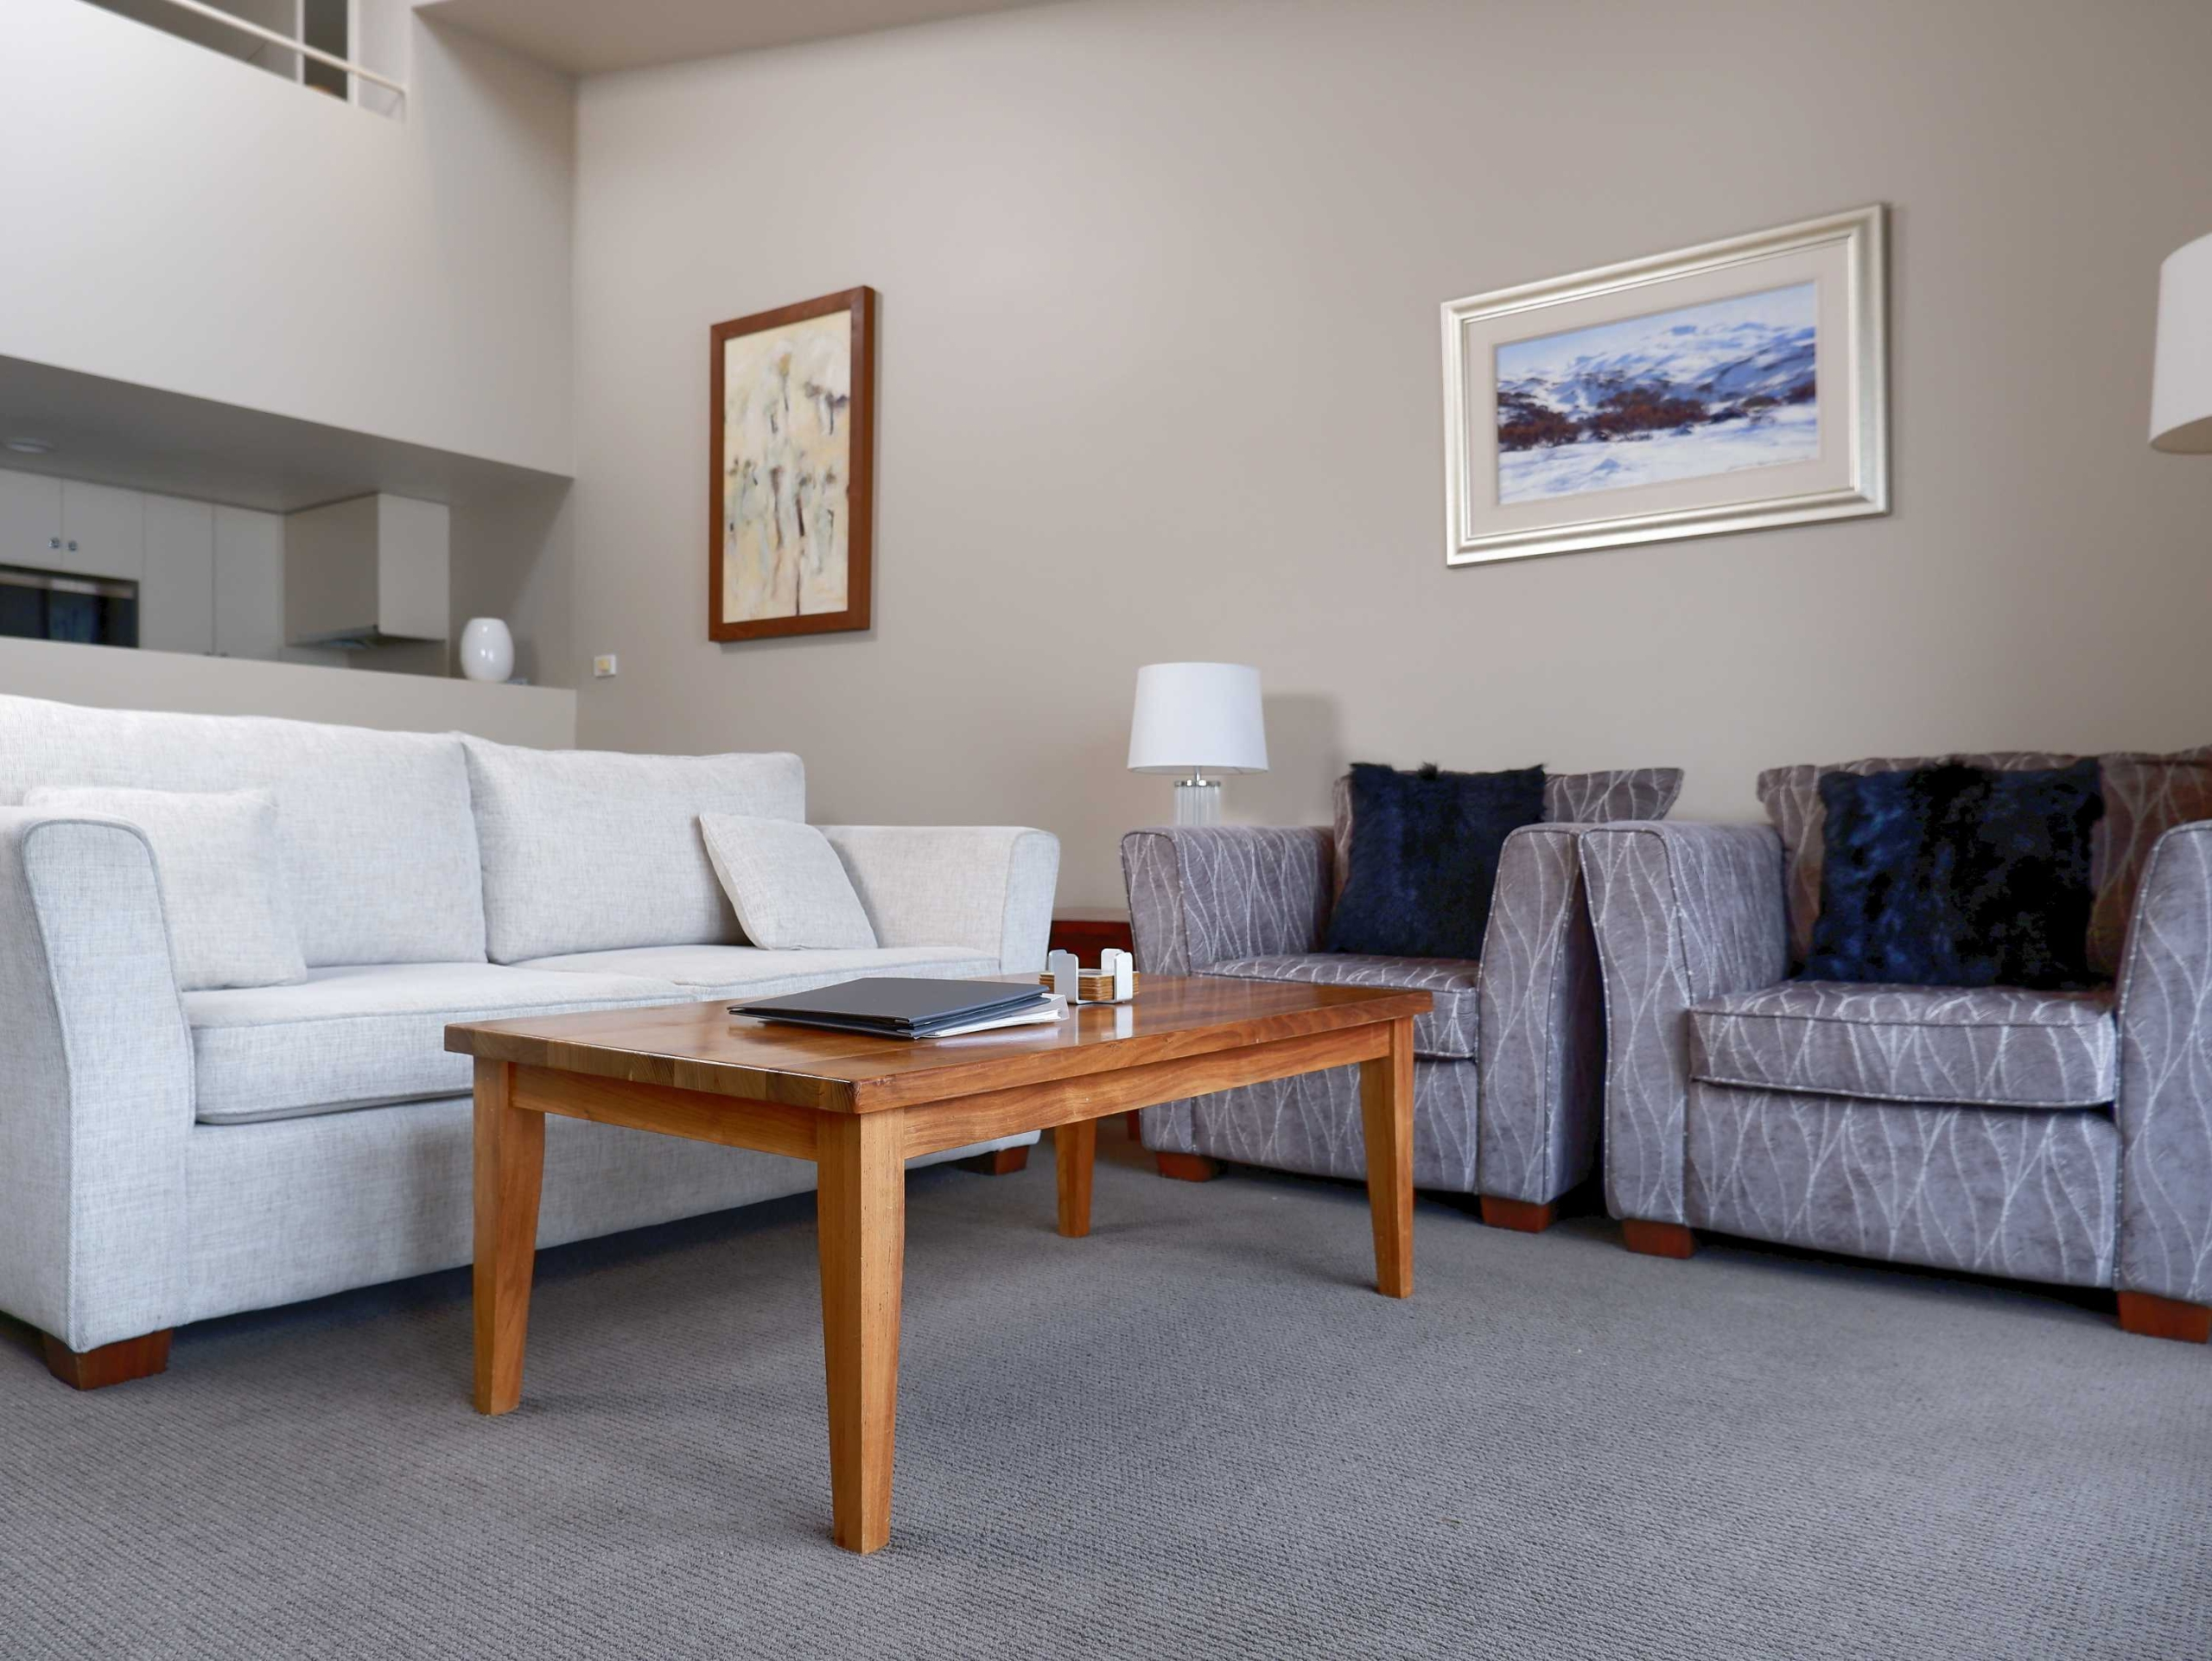 F2-Squatters-Run-Thredbo-Luxury-Apartments-1-Bed-Loft-Deluxe-Room-345-persons-see-squatters.com_.au-1-1-scaled